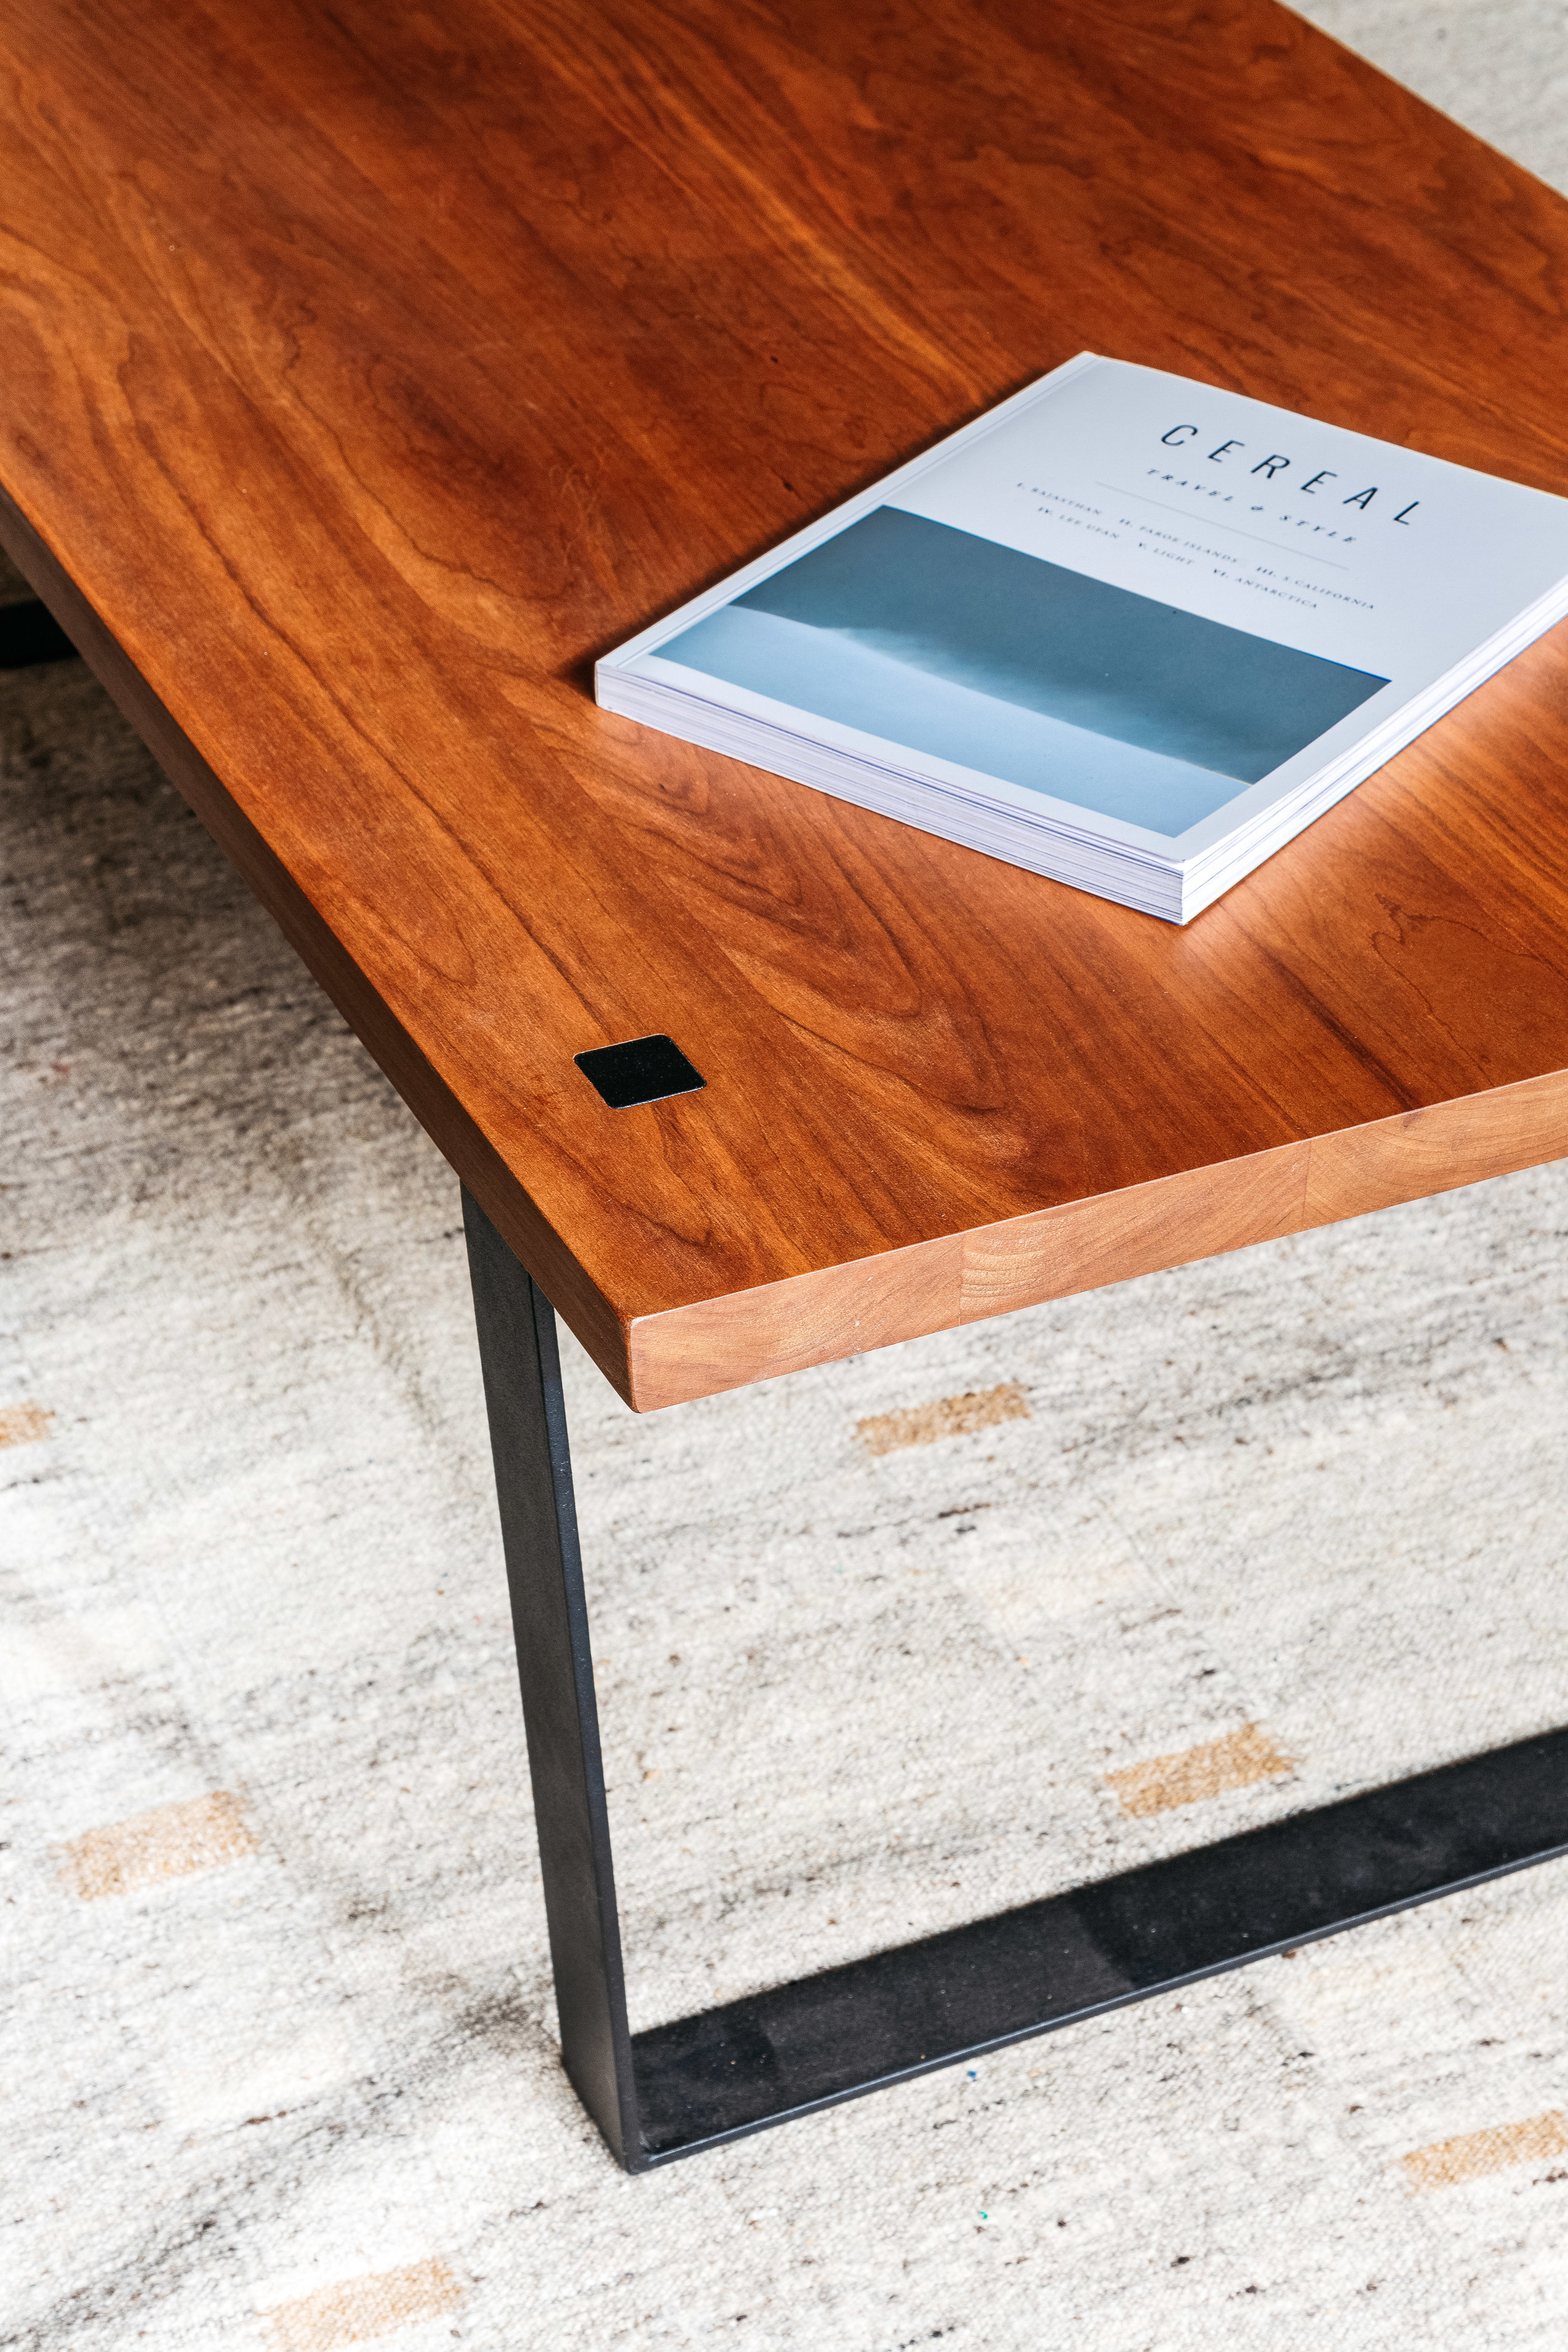 ATLA furniture coffee table detail.jpg